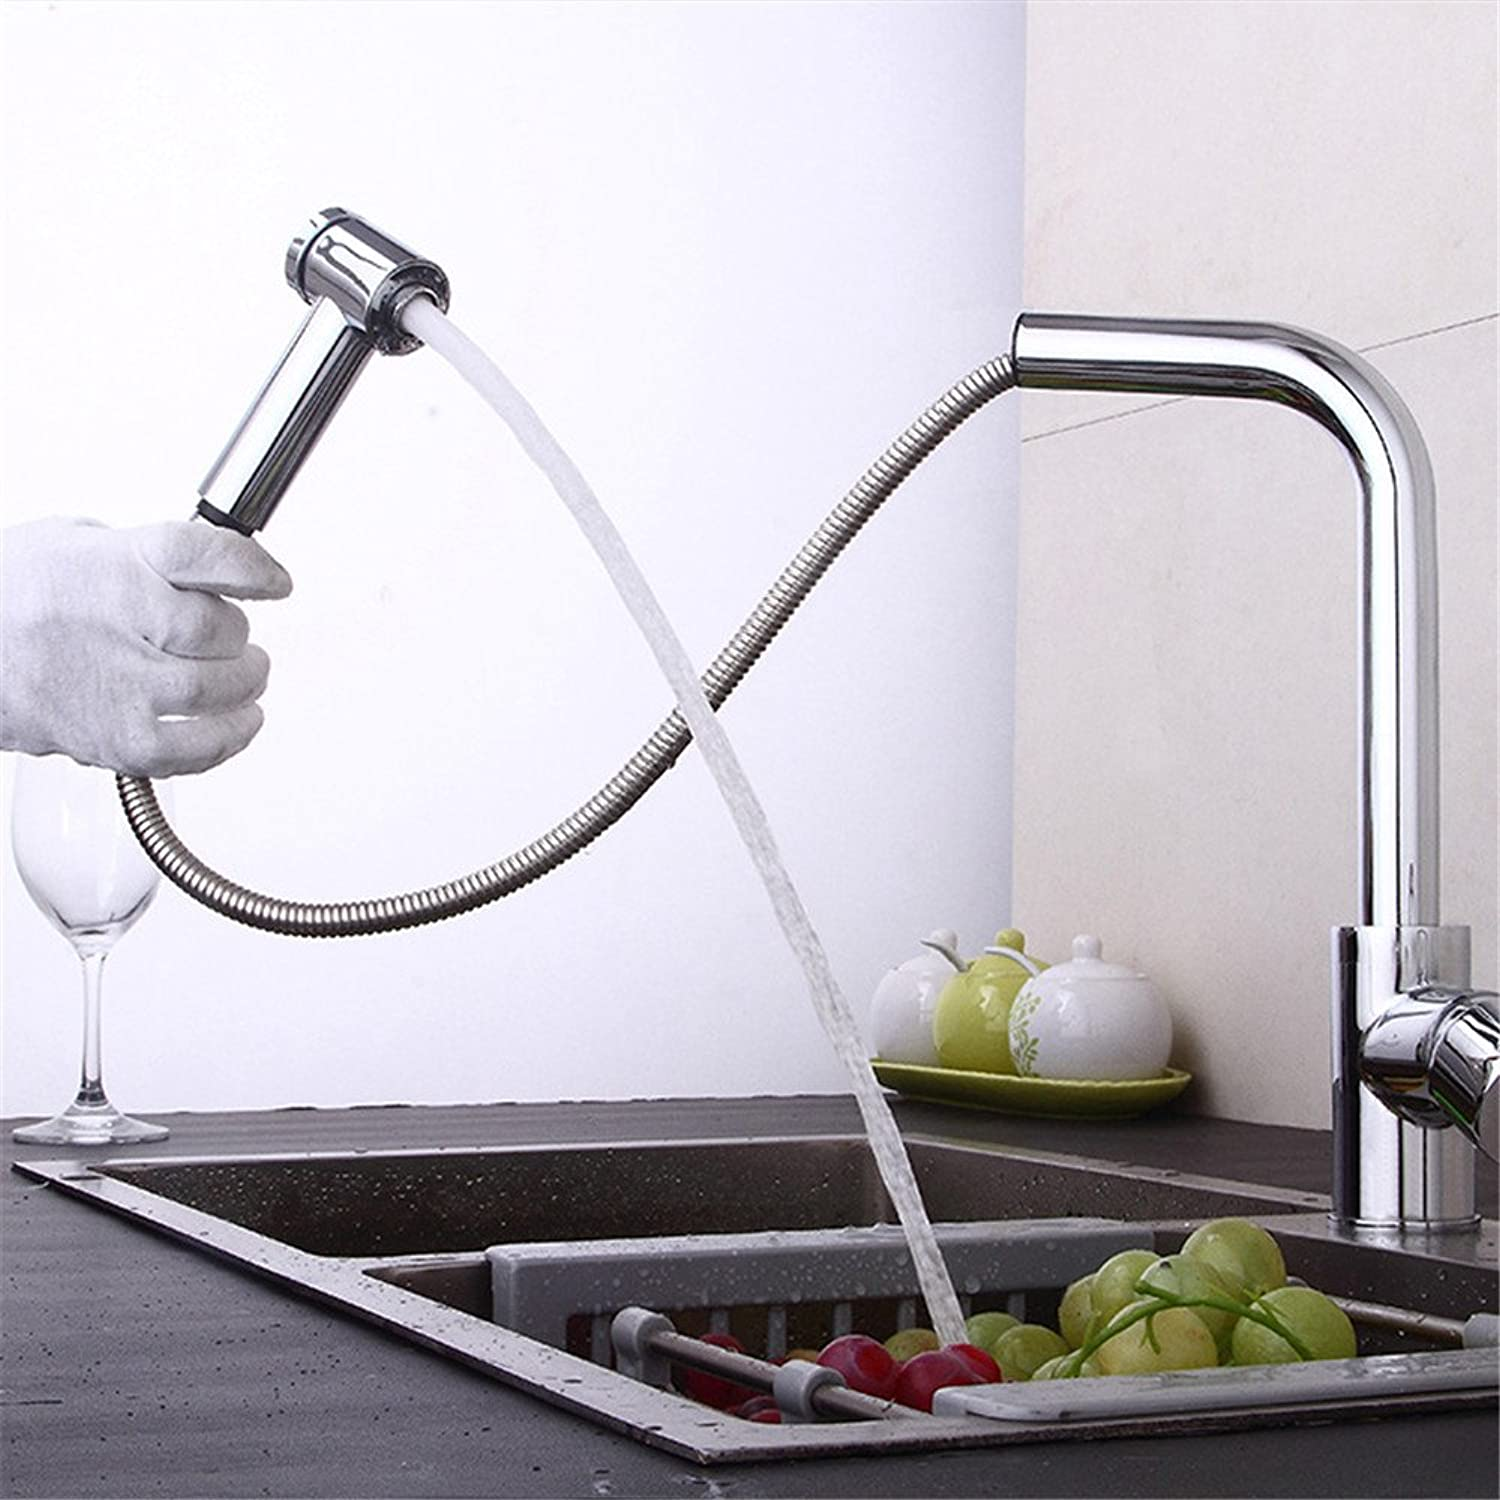 MIAORUI Single type greenical copper pot kitchen faucet kitchen drawing cold and hot water tap